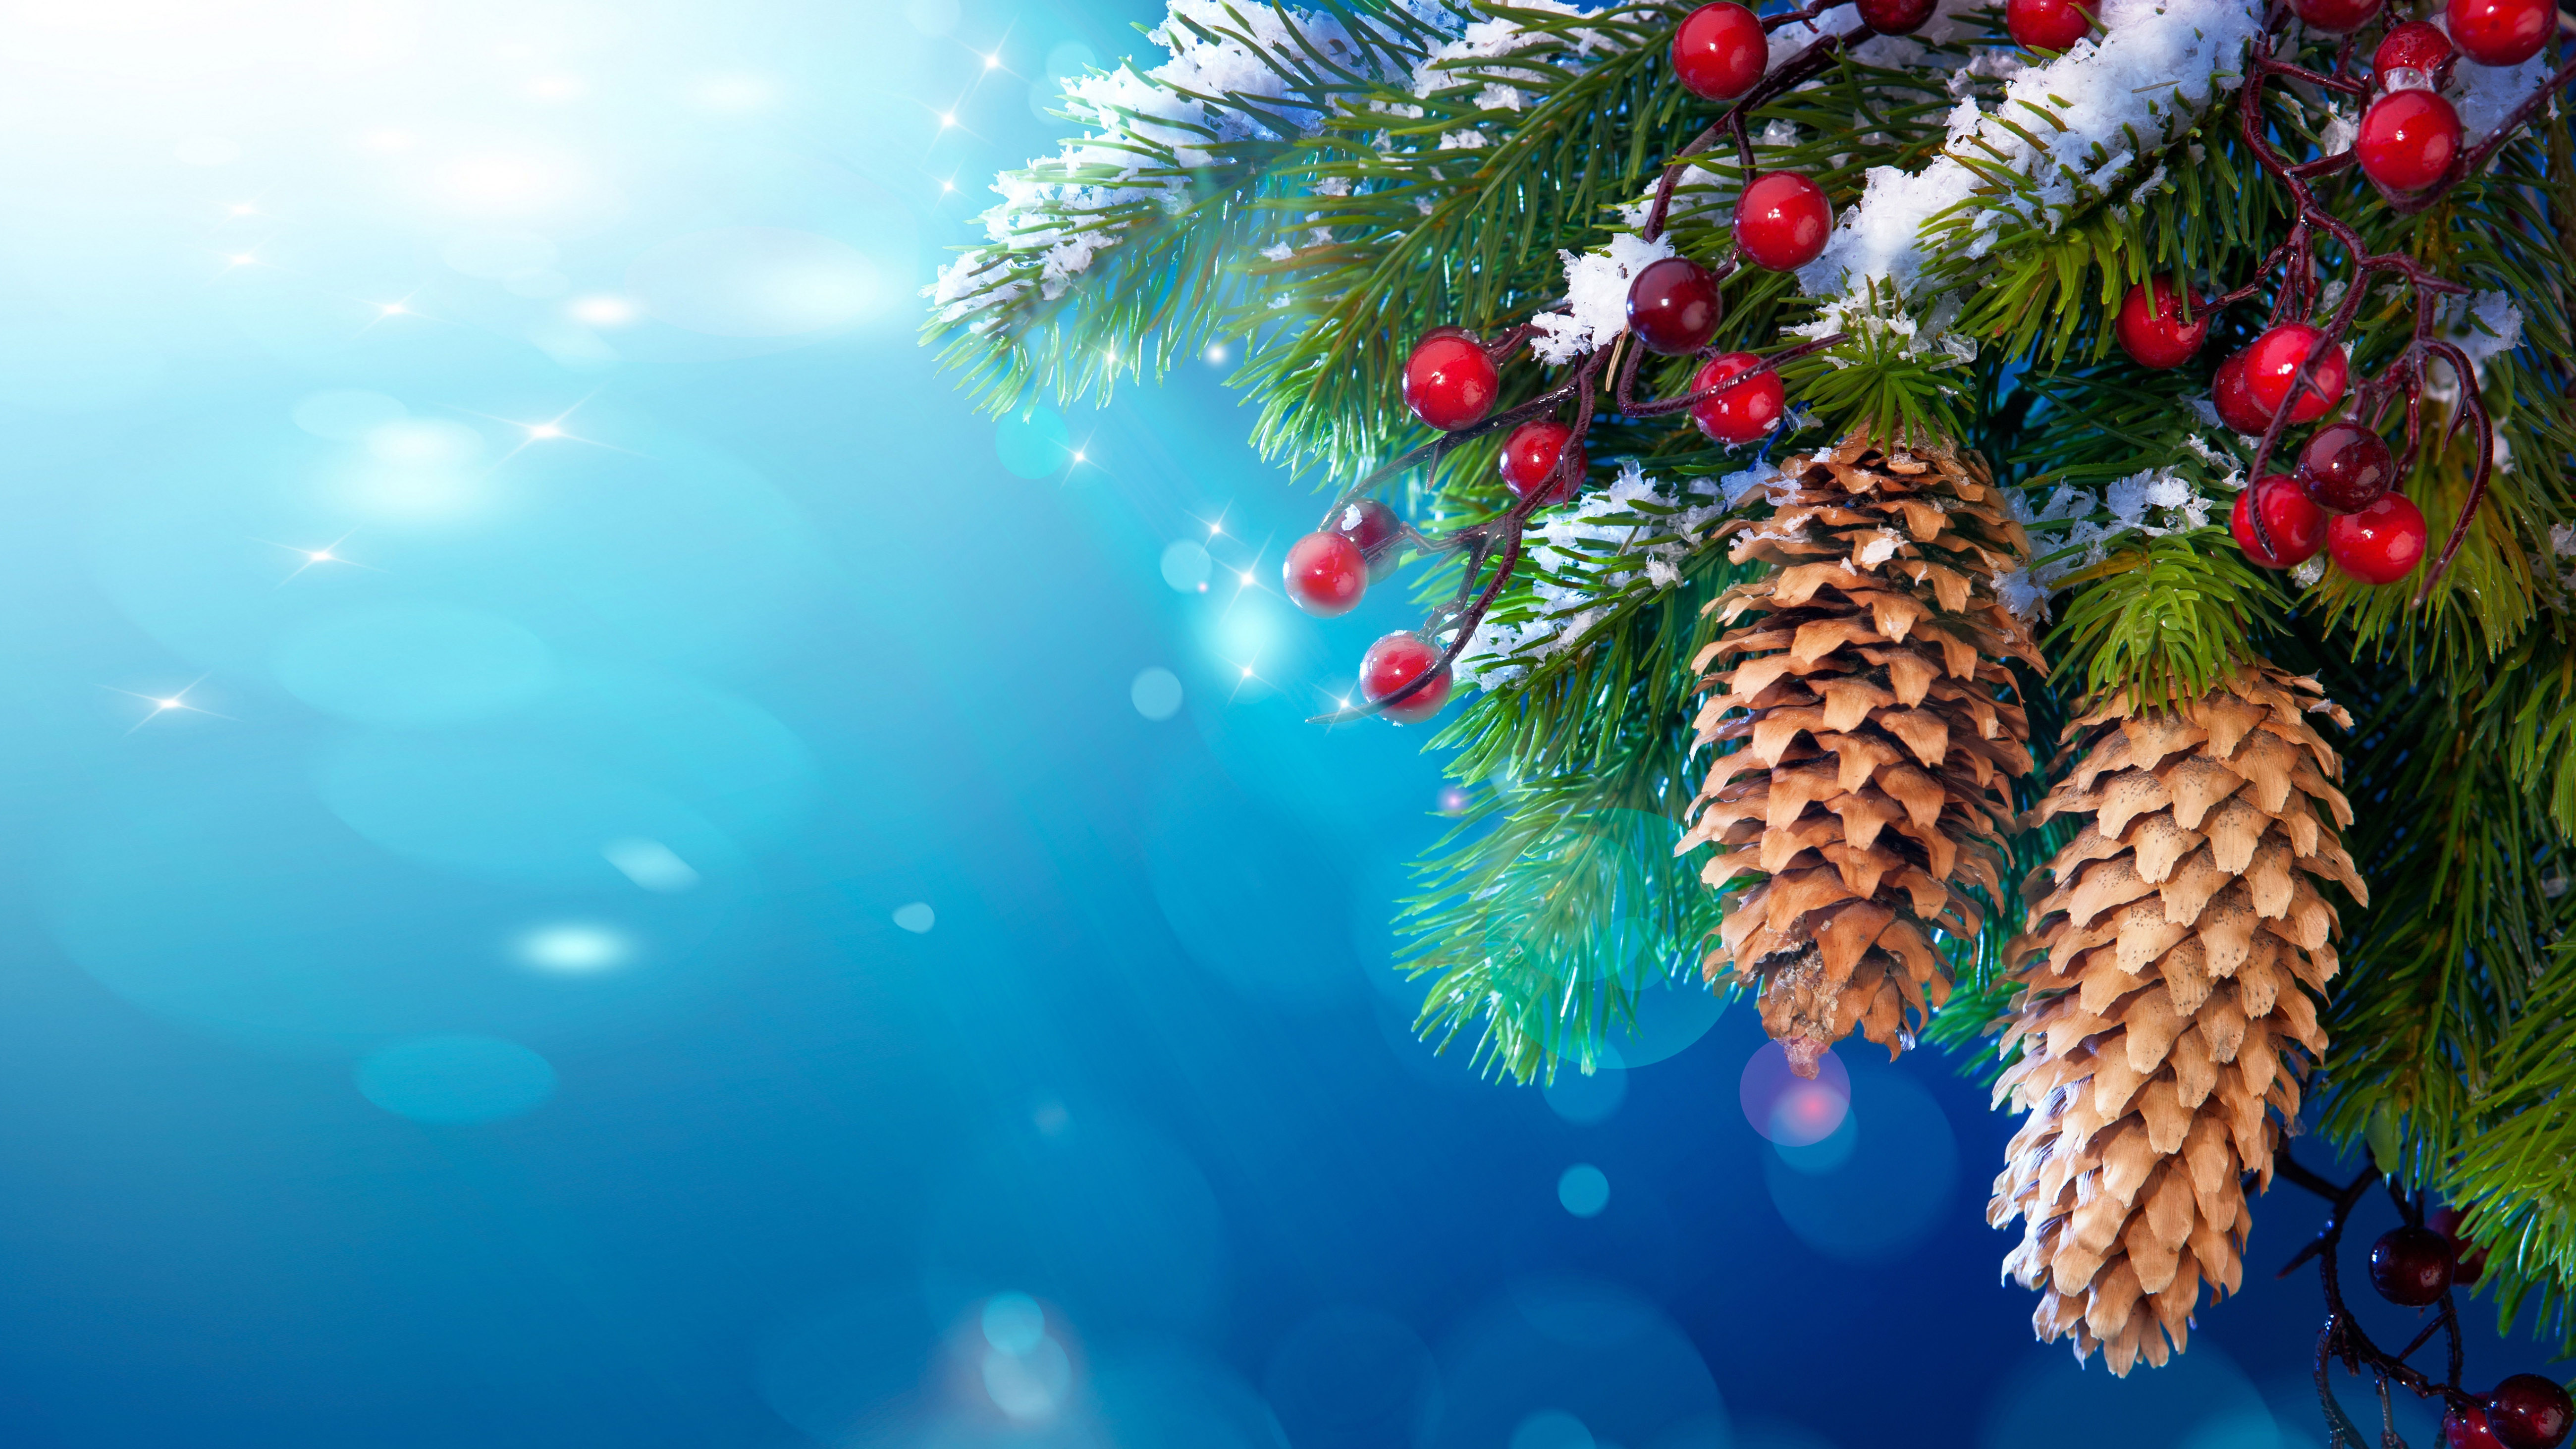 Hd Diwali Wallpapers Free New Year Christmas Pine Twigs And Berries Cones Snow